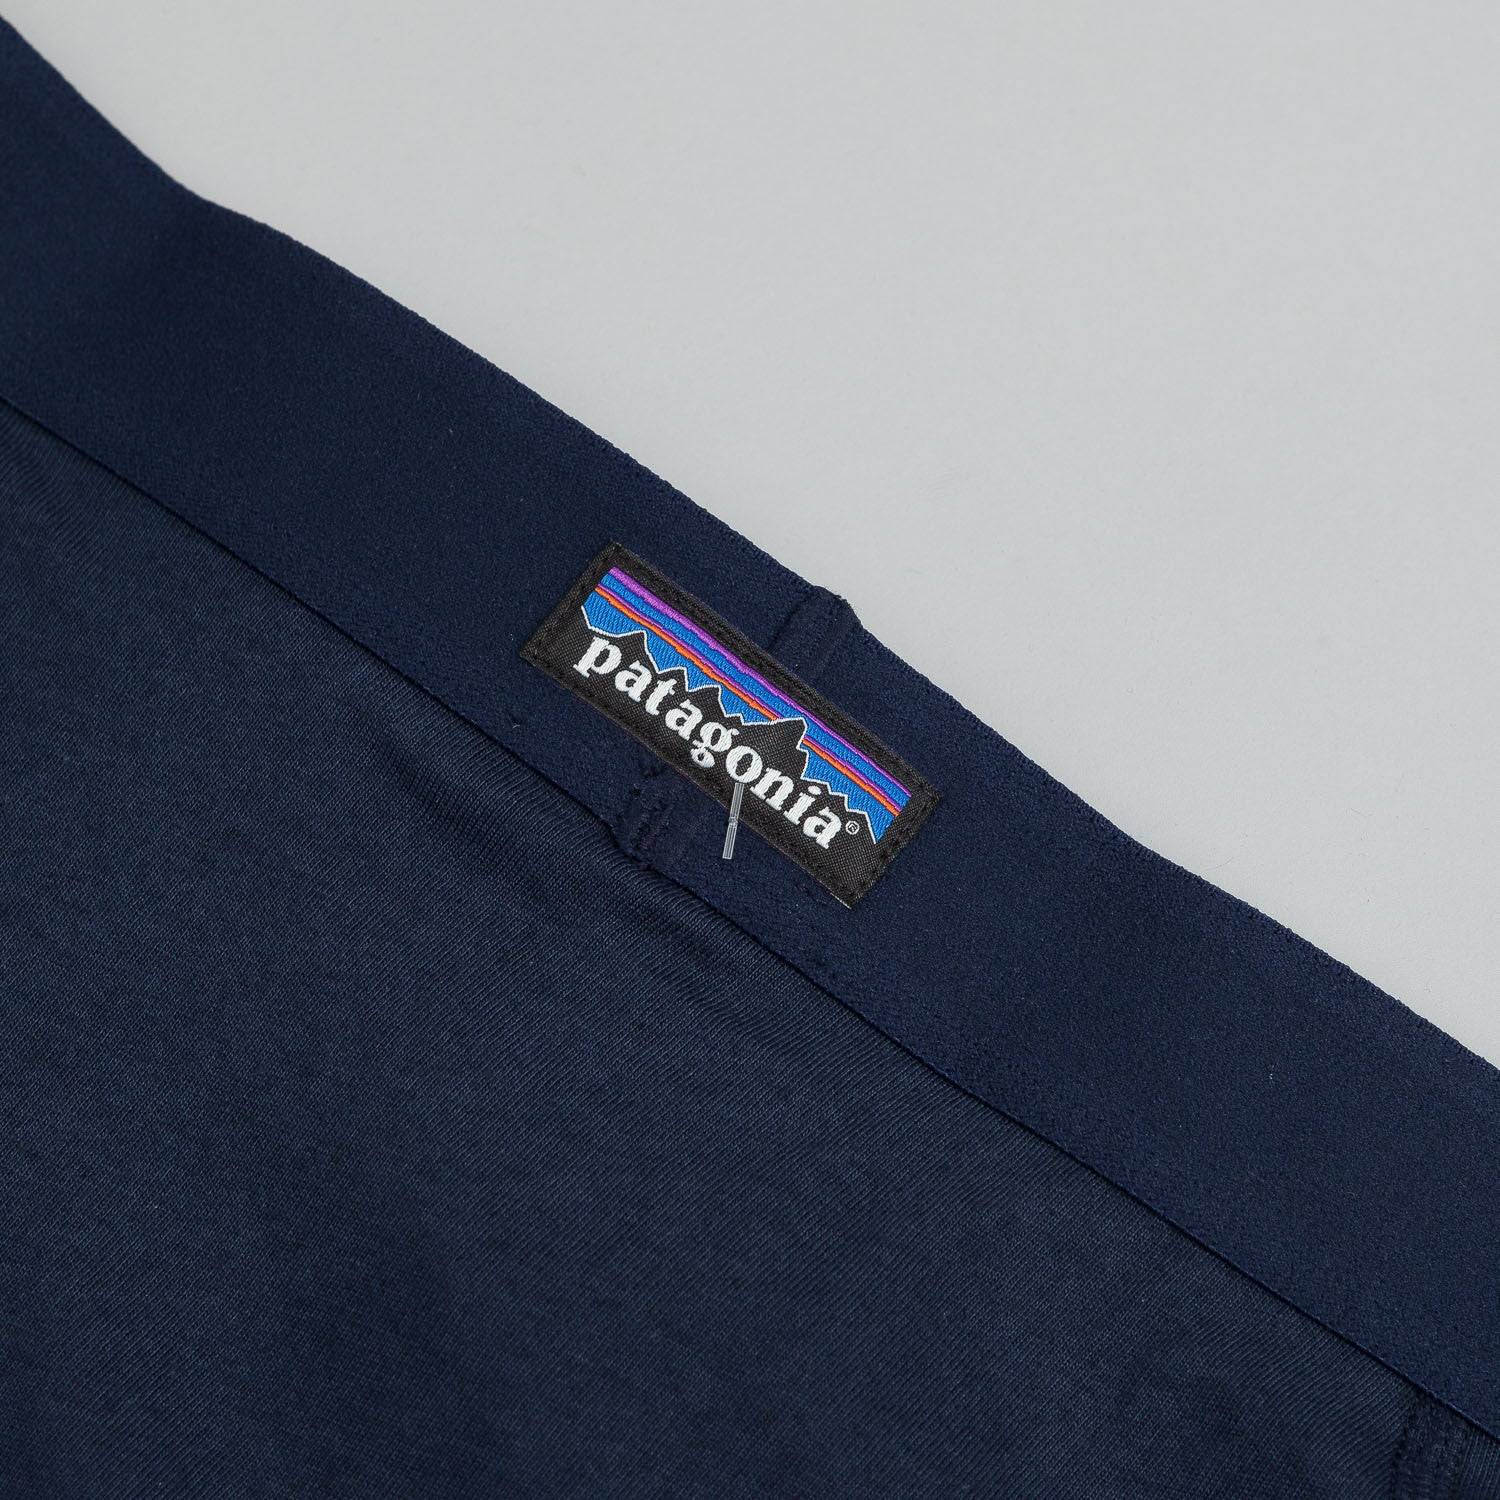 Patagonia Everyday Boxer Briefs - Navy Blue